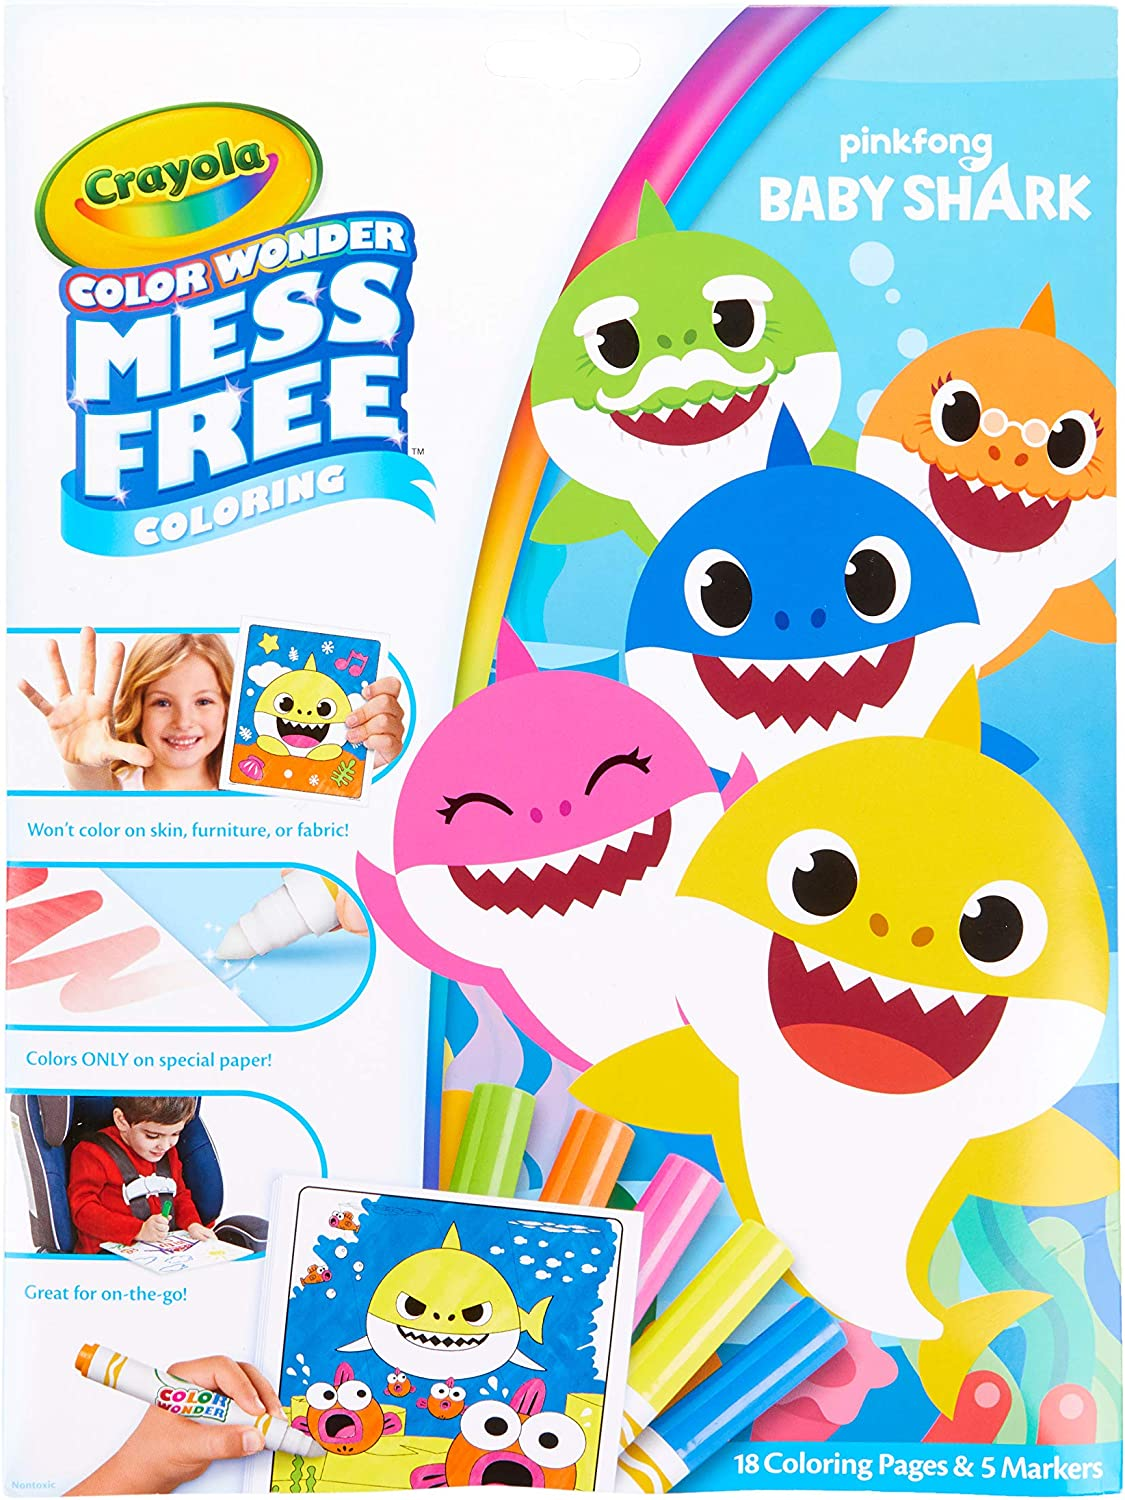 B07PMLL5L7 Crayola Color Wonder Baby Shark Coloring Pages, Mess Free Coloring, Gift for Kids, Age 3, 4, 5, 6 81Fgf0g32BkL